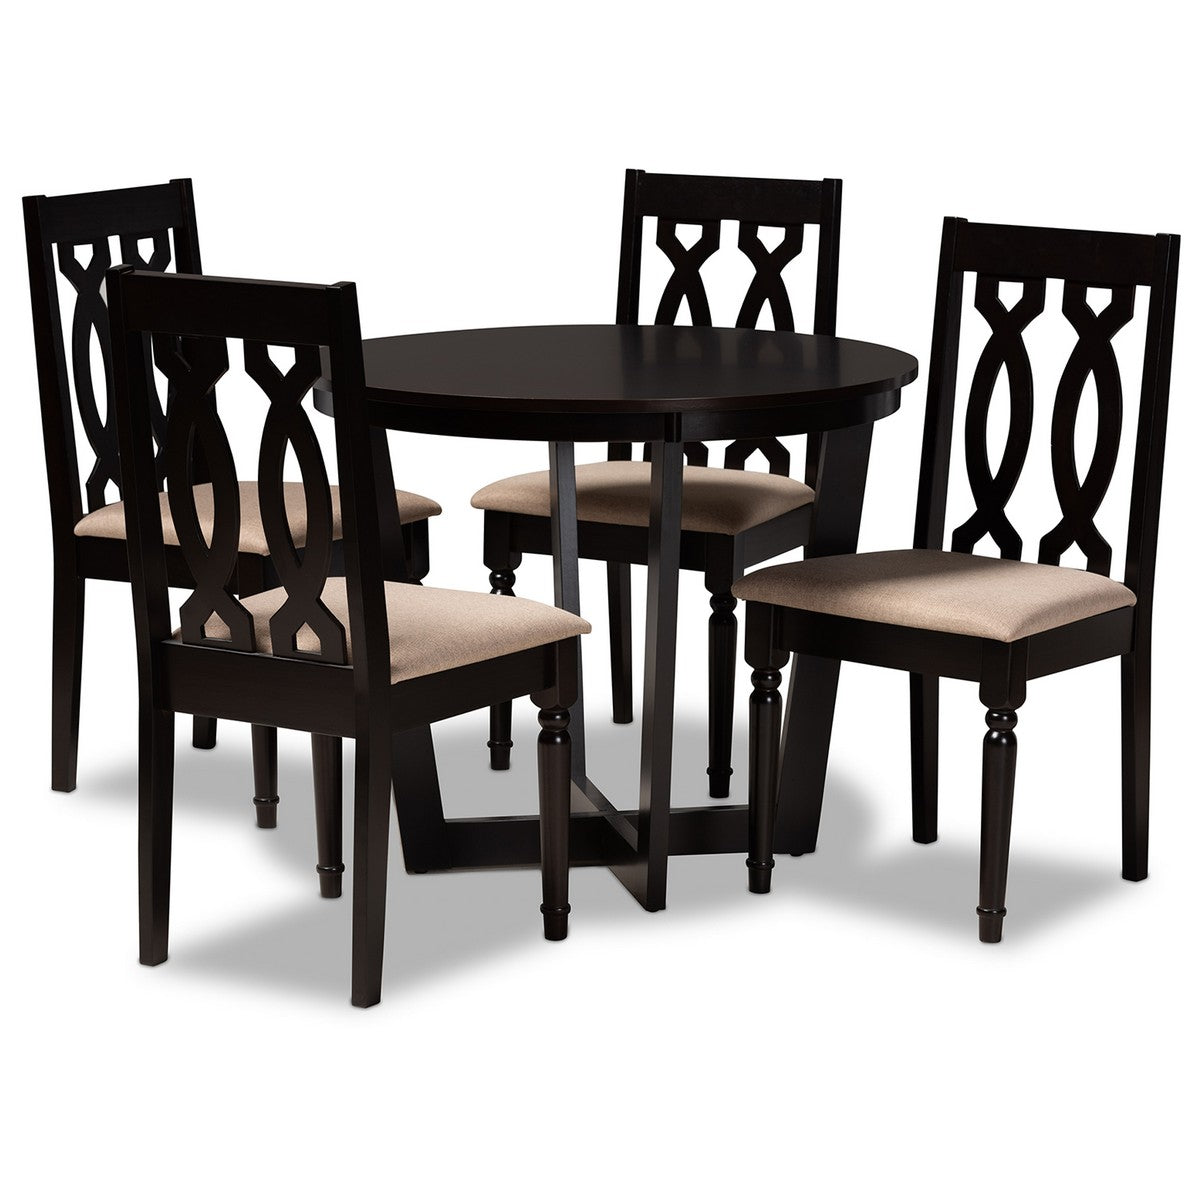 Baxton Studio Julie Modern and Contemporary Sand Fabric Upholstered and Dark Brown Finished Wood 5-Piece Dining Set Baxton Studio-Dining Sets-Minimal And Modern - 1